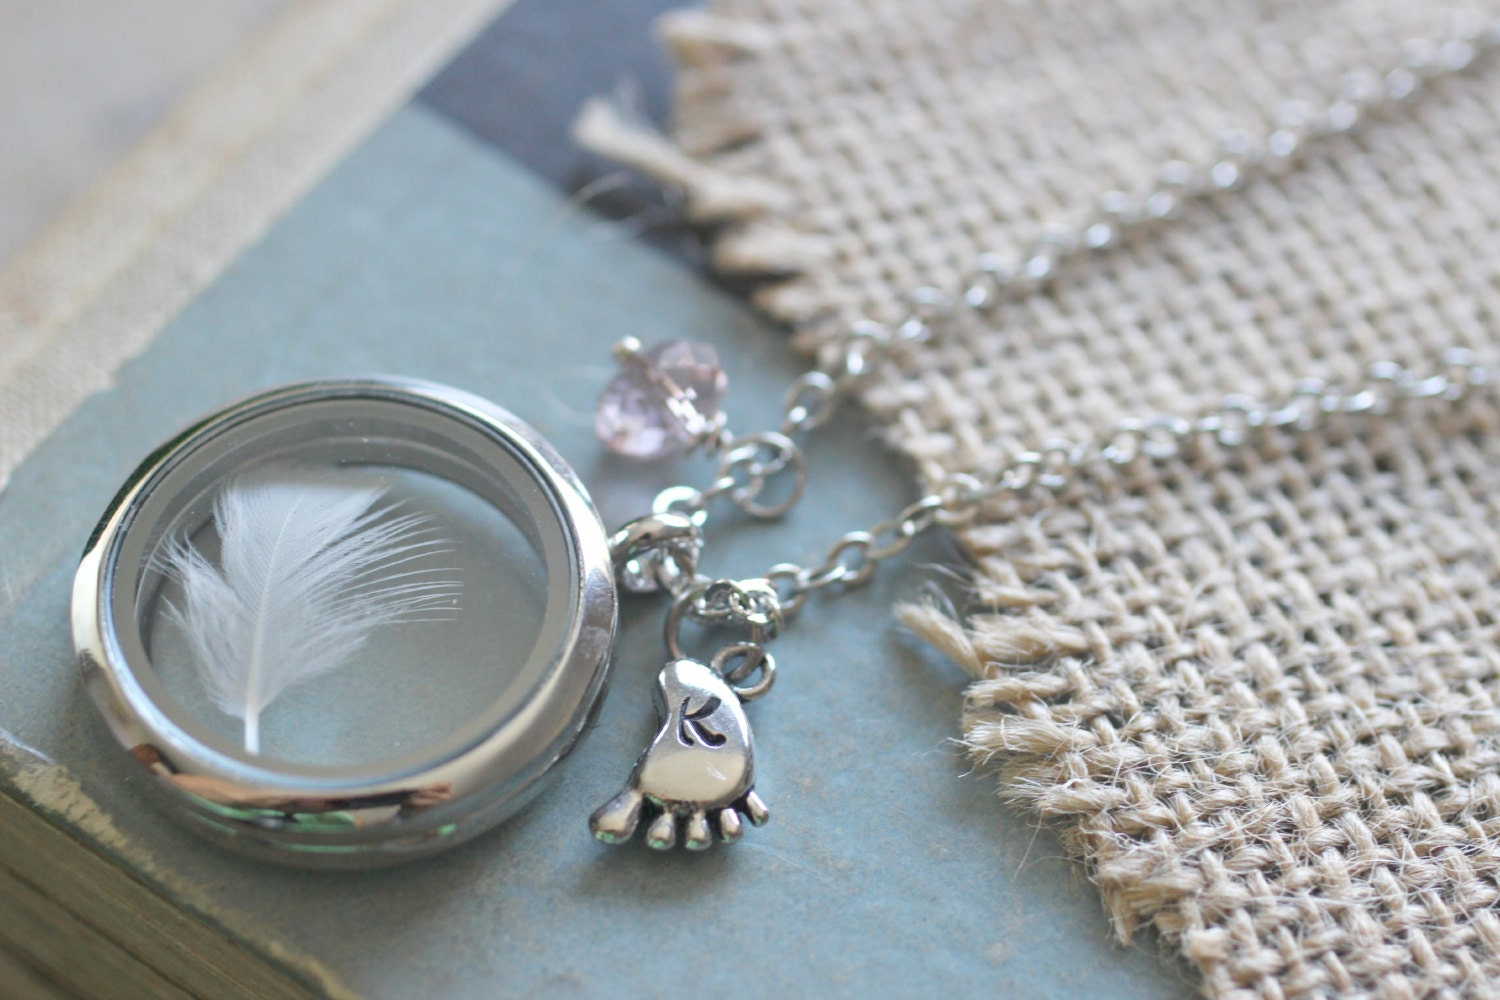 century purple wearable detail the unique locket artefact lockets charge a work every matters for